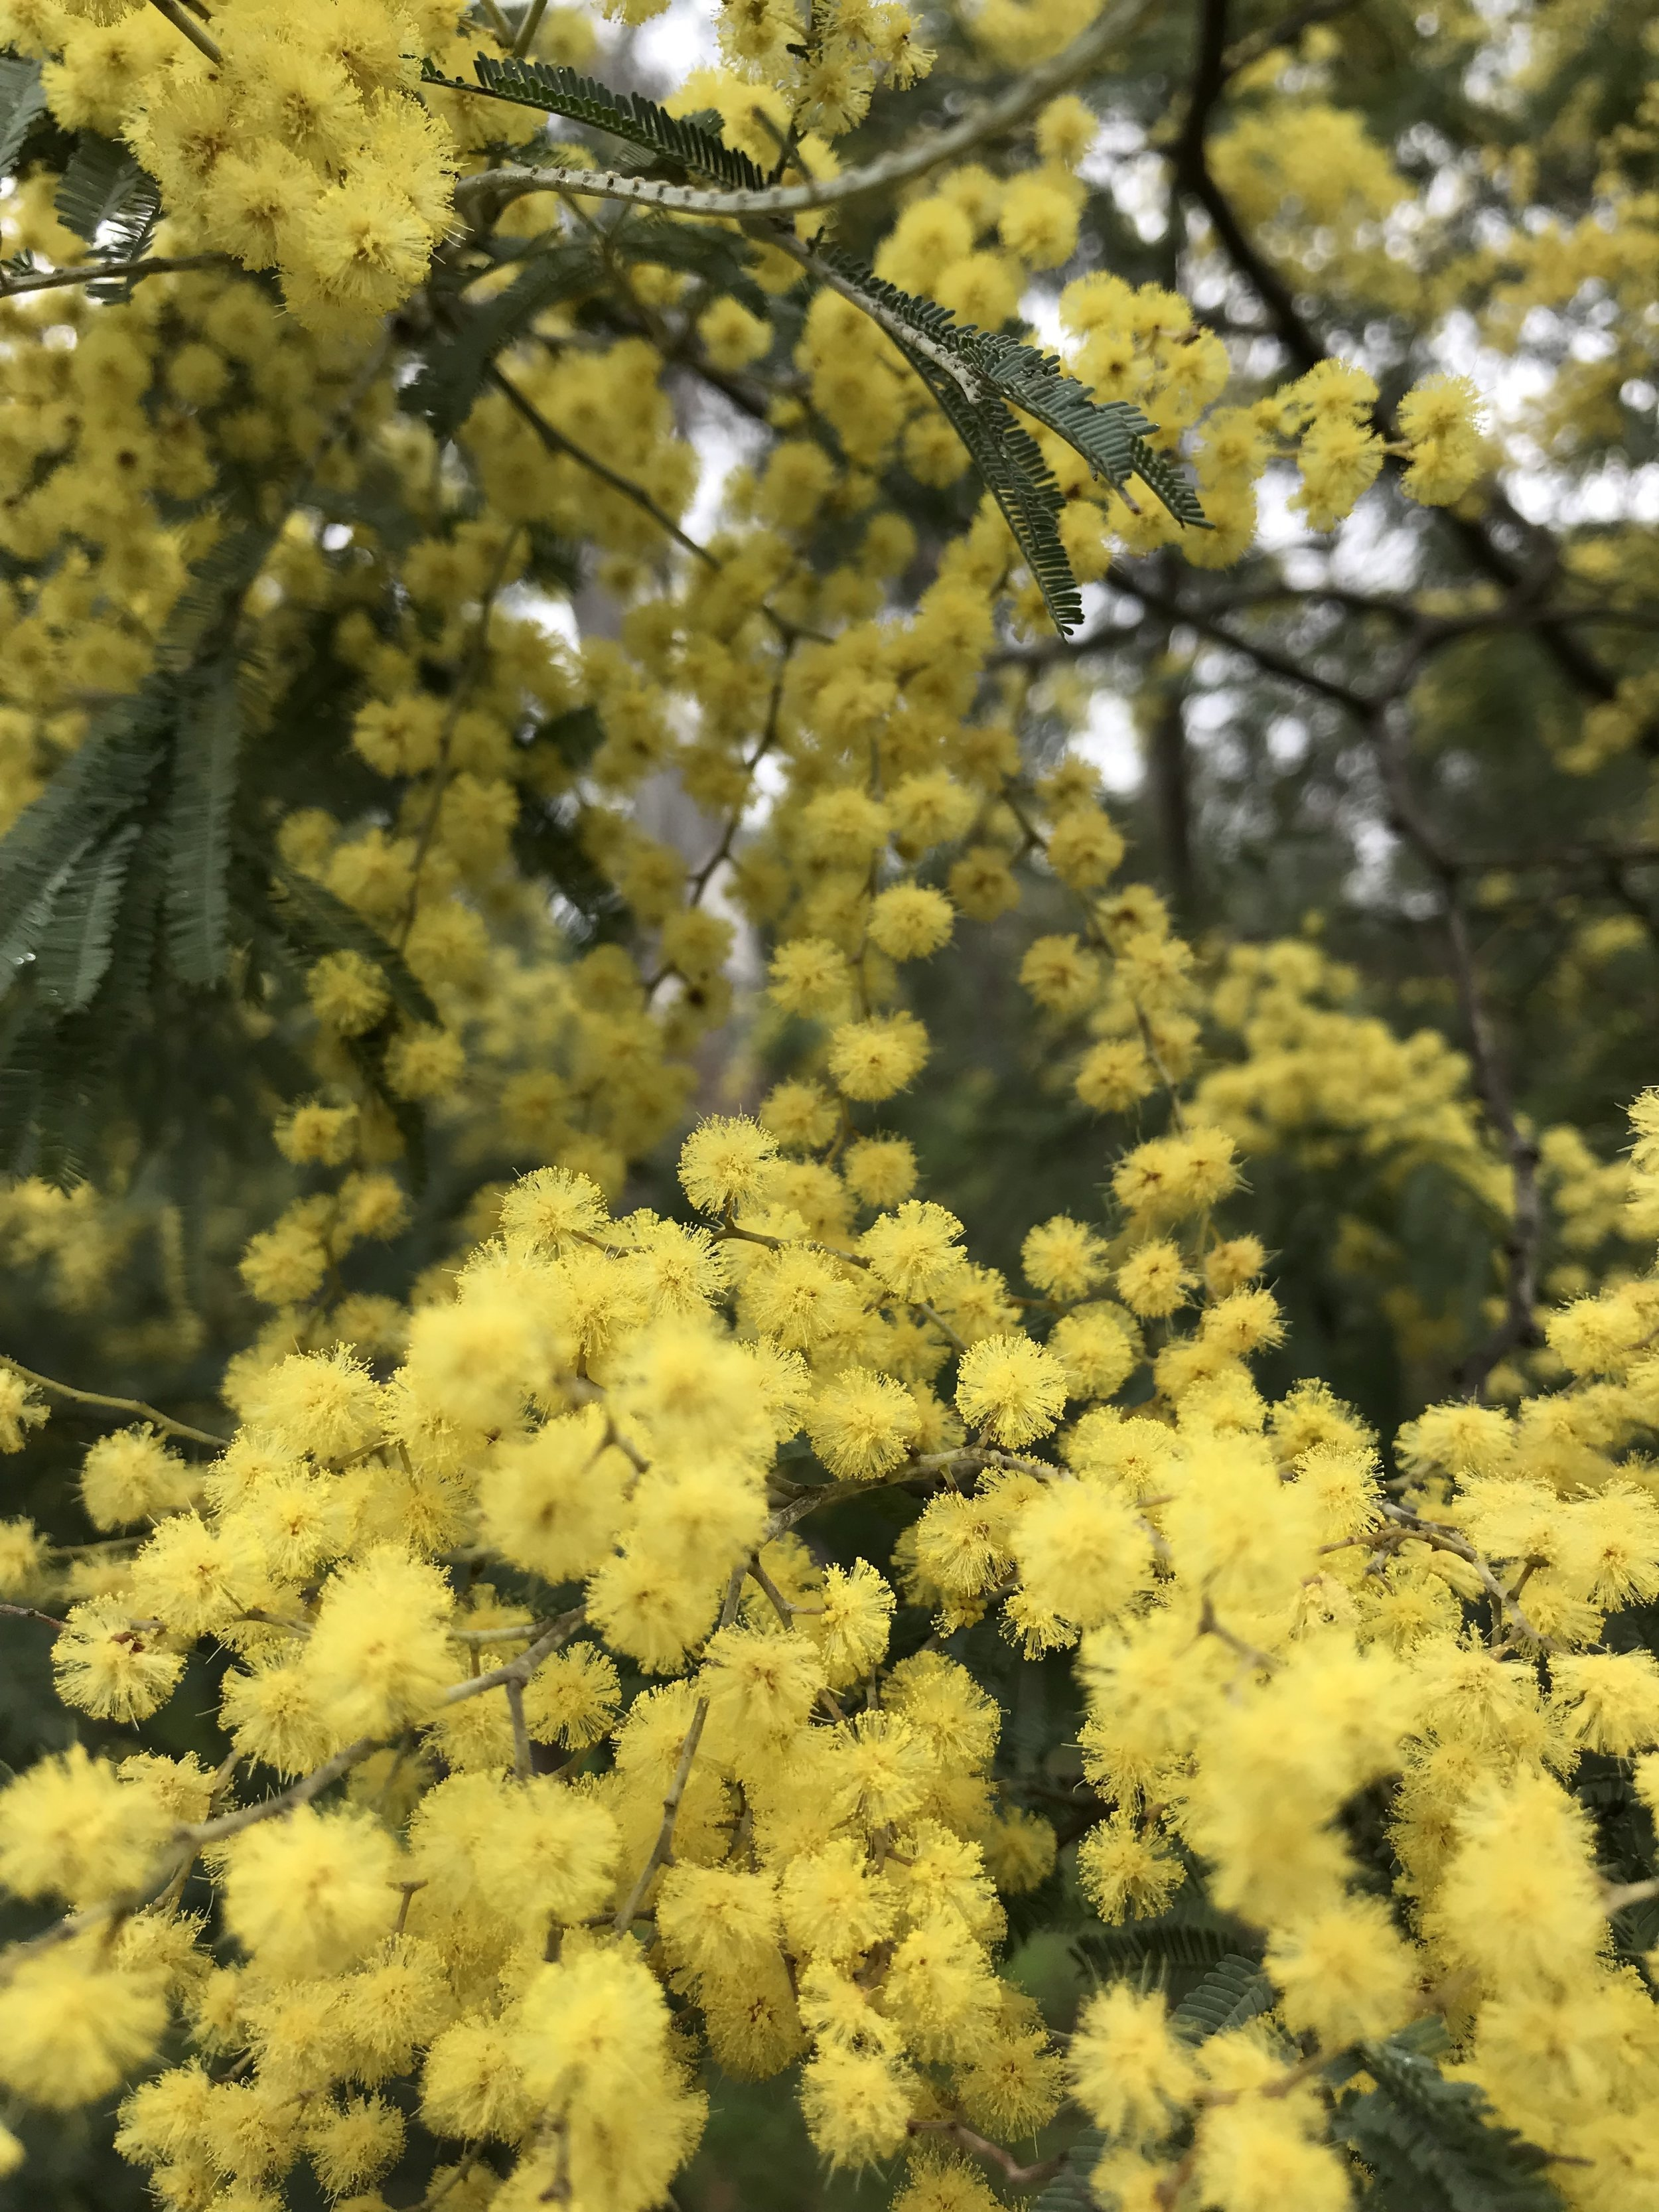 Wattle in Yarra Bend Park on a morning walk contemplating this poem